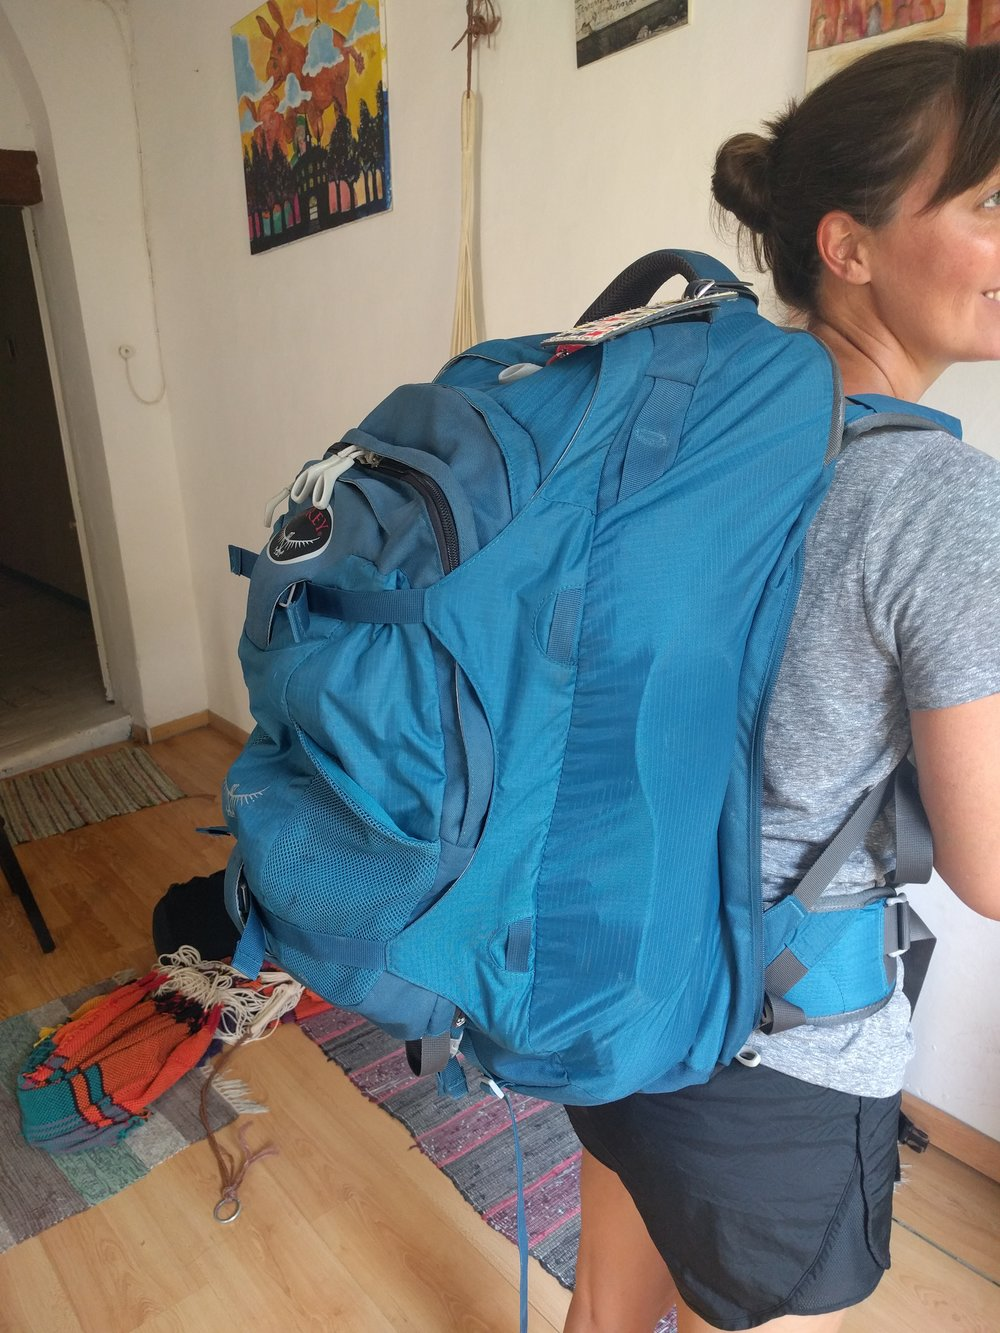 With the daypack attached the Osprey Farpoint 55's profile pushes way off your back. There's a reason serious trail backpacks go up and not out: so that weight goes down onto your hips not out from your shoulders and lower back.